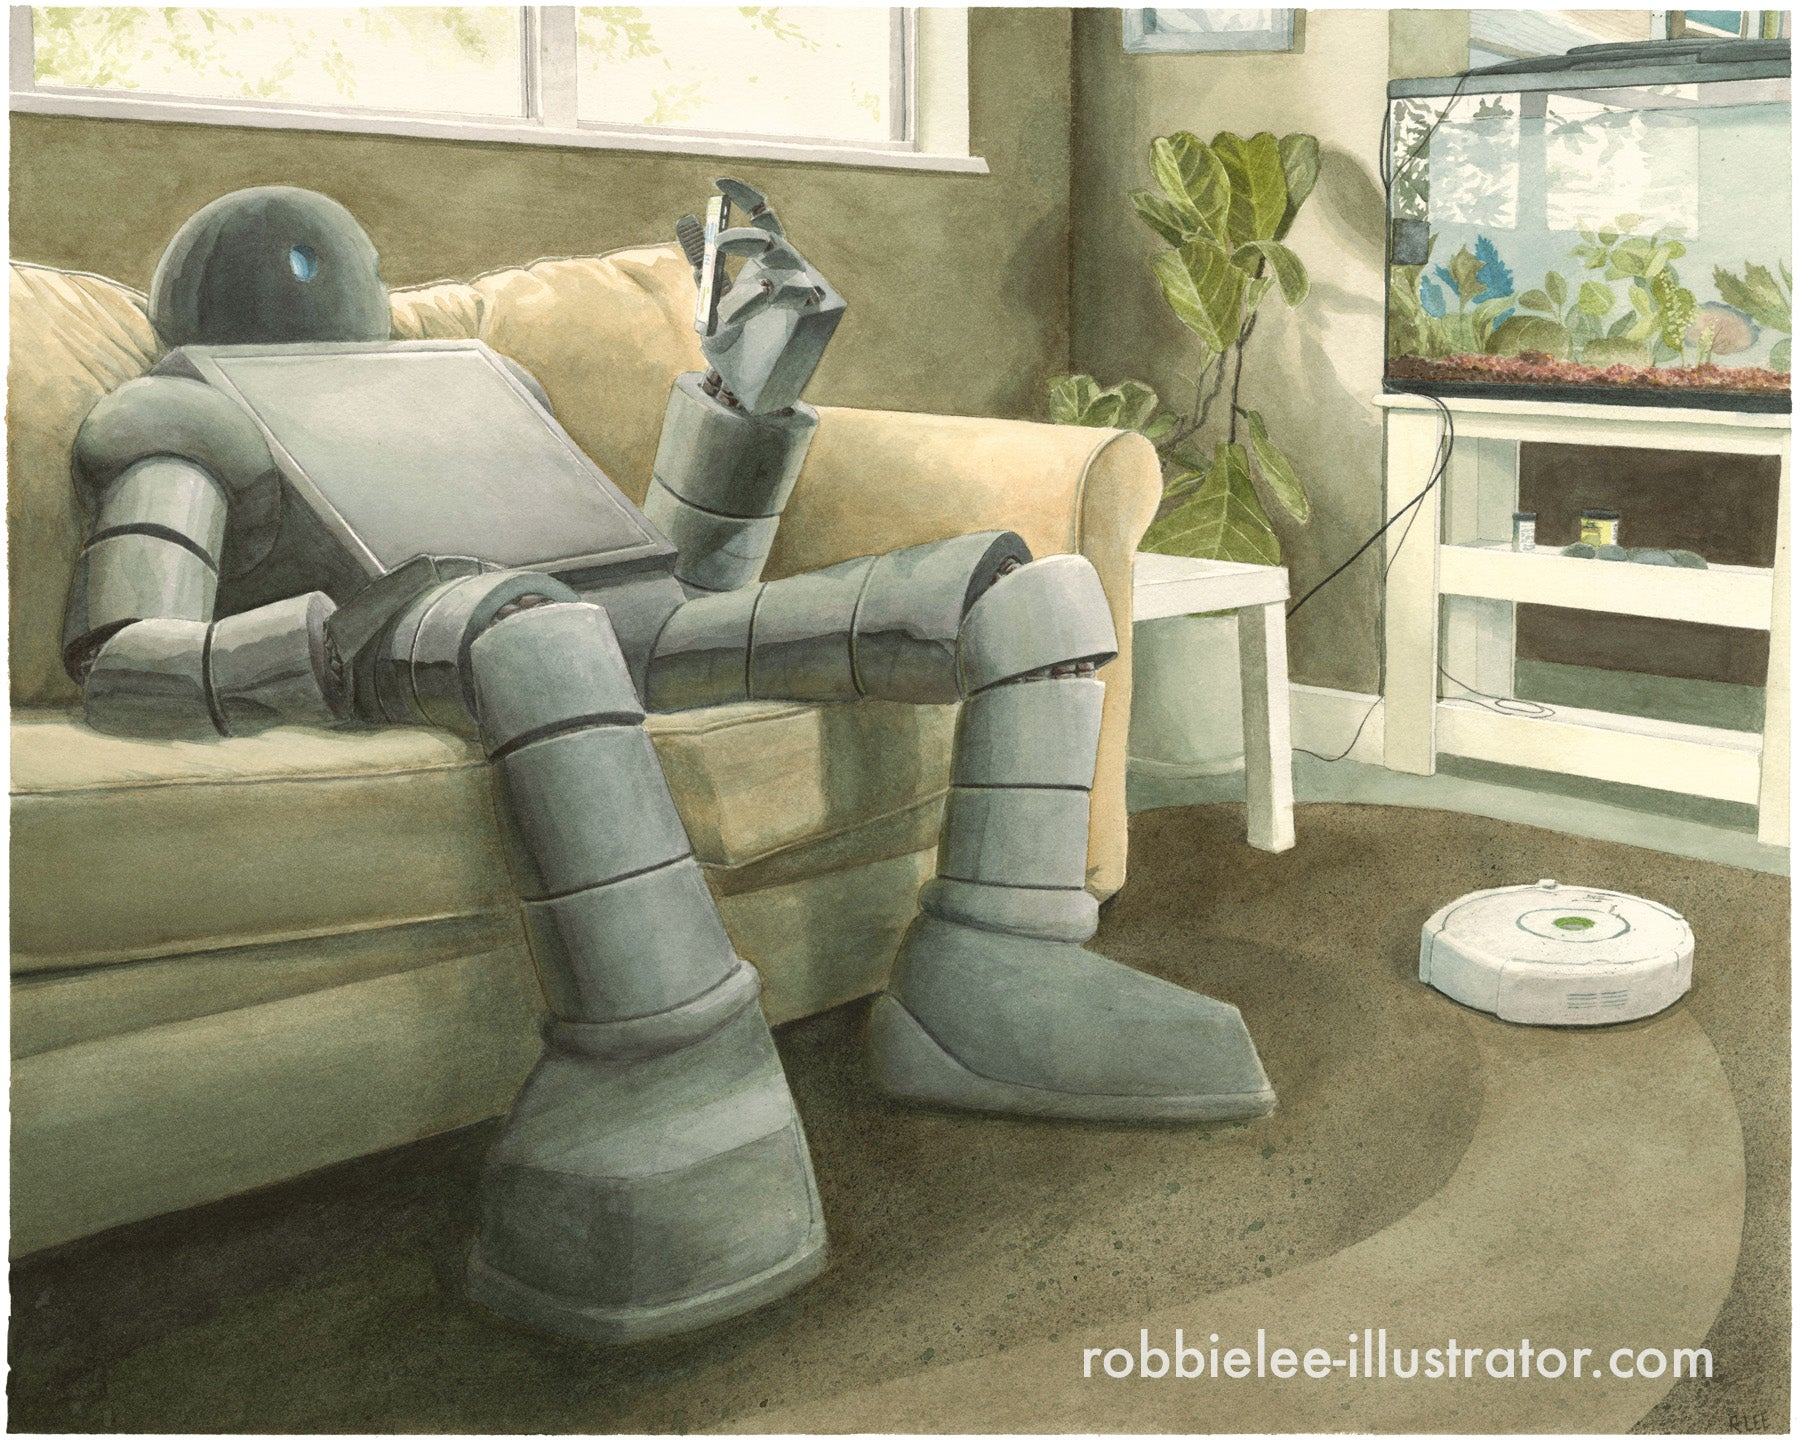 A Robot Vacuuming